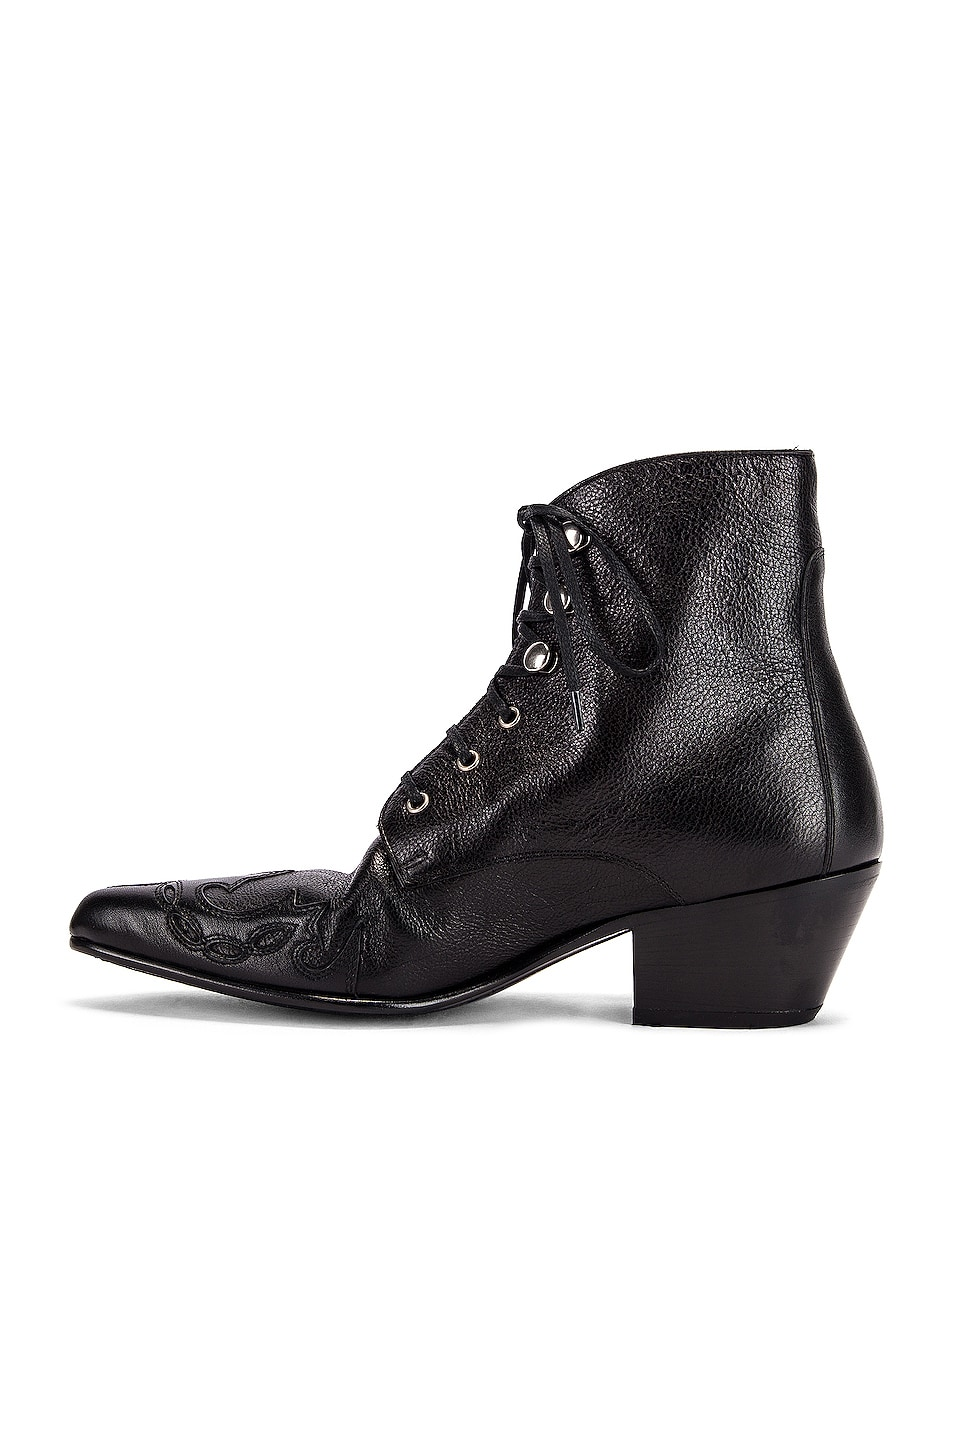 Image 5 of Saint Laurent Rebecca Lace Up Booties in Black